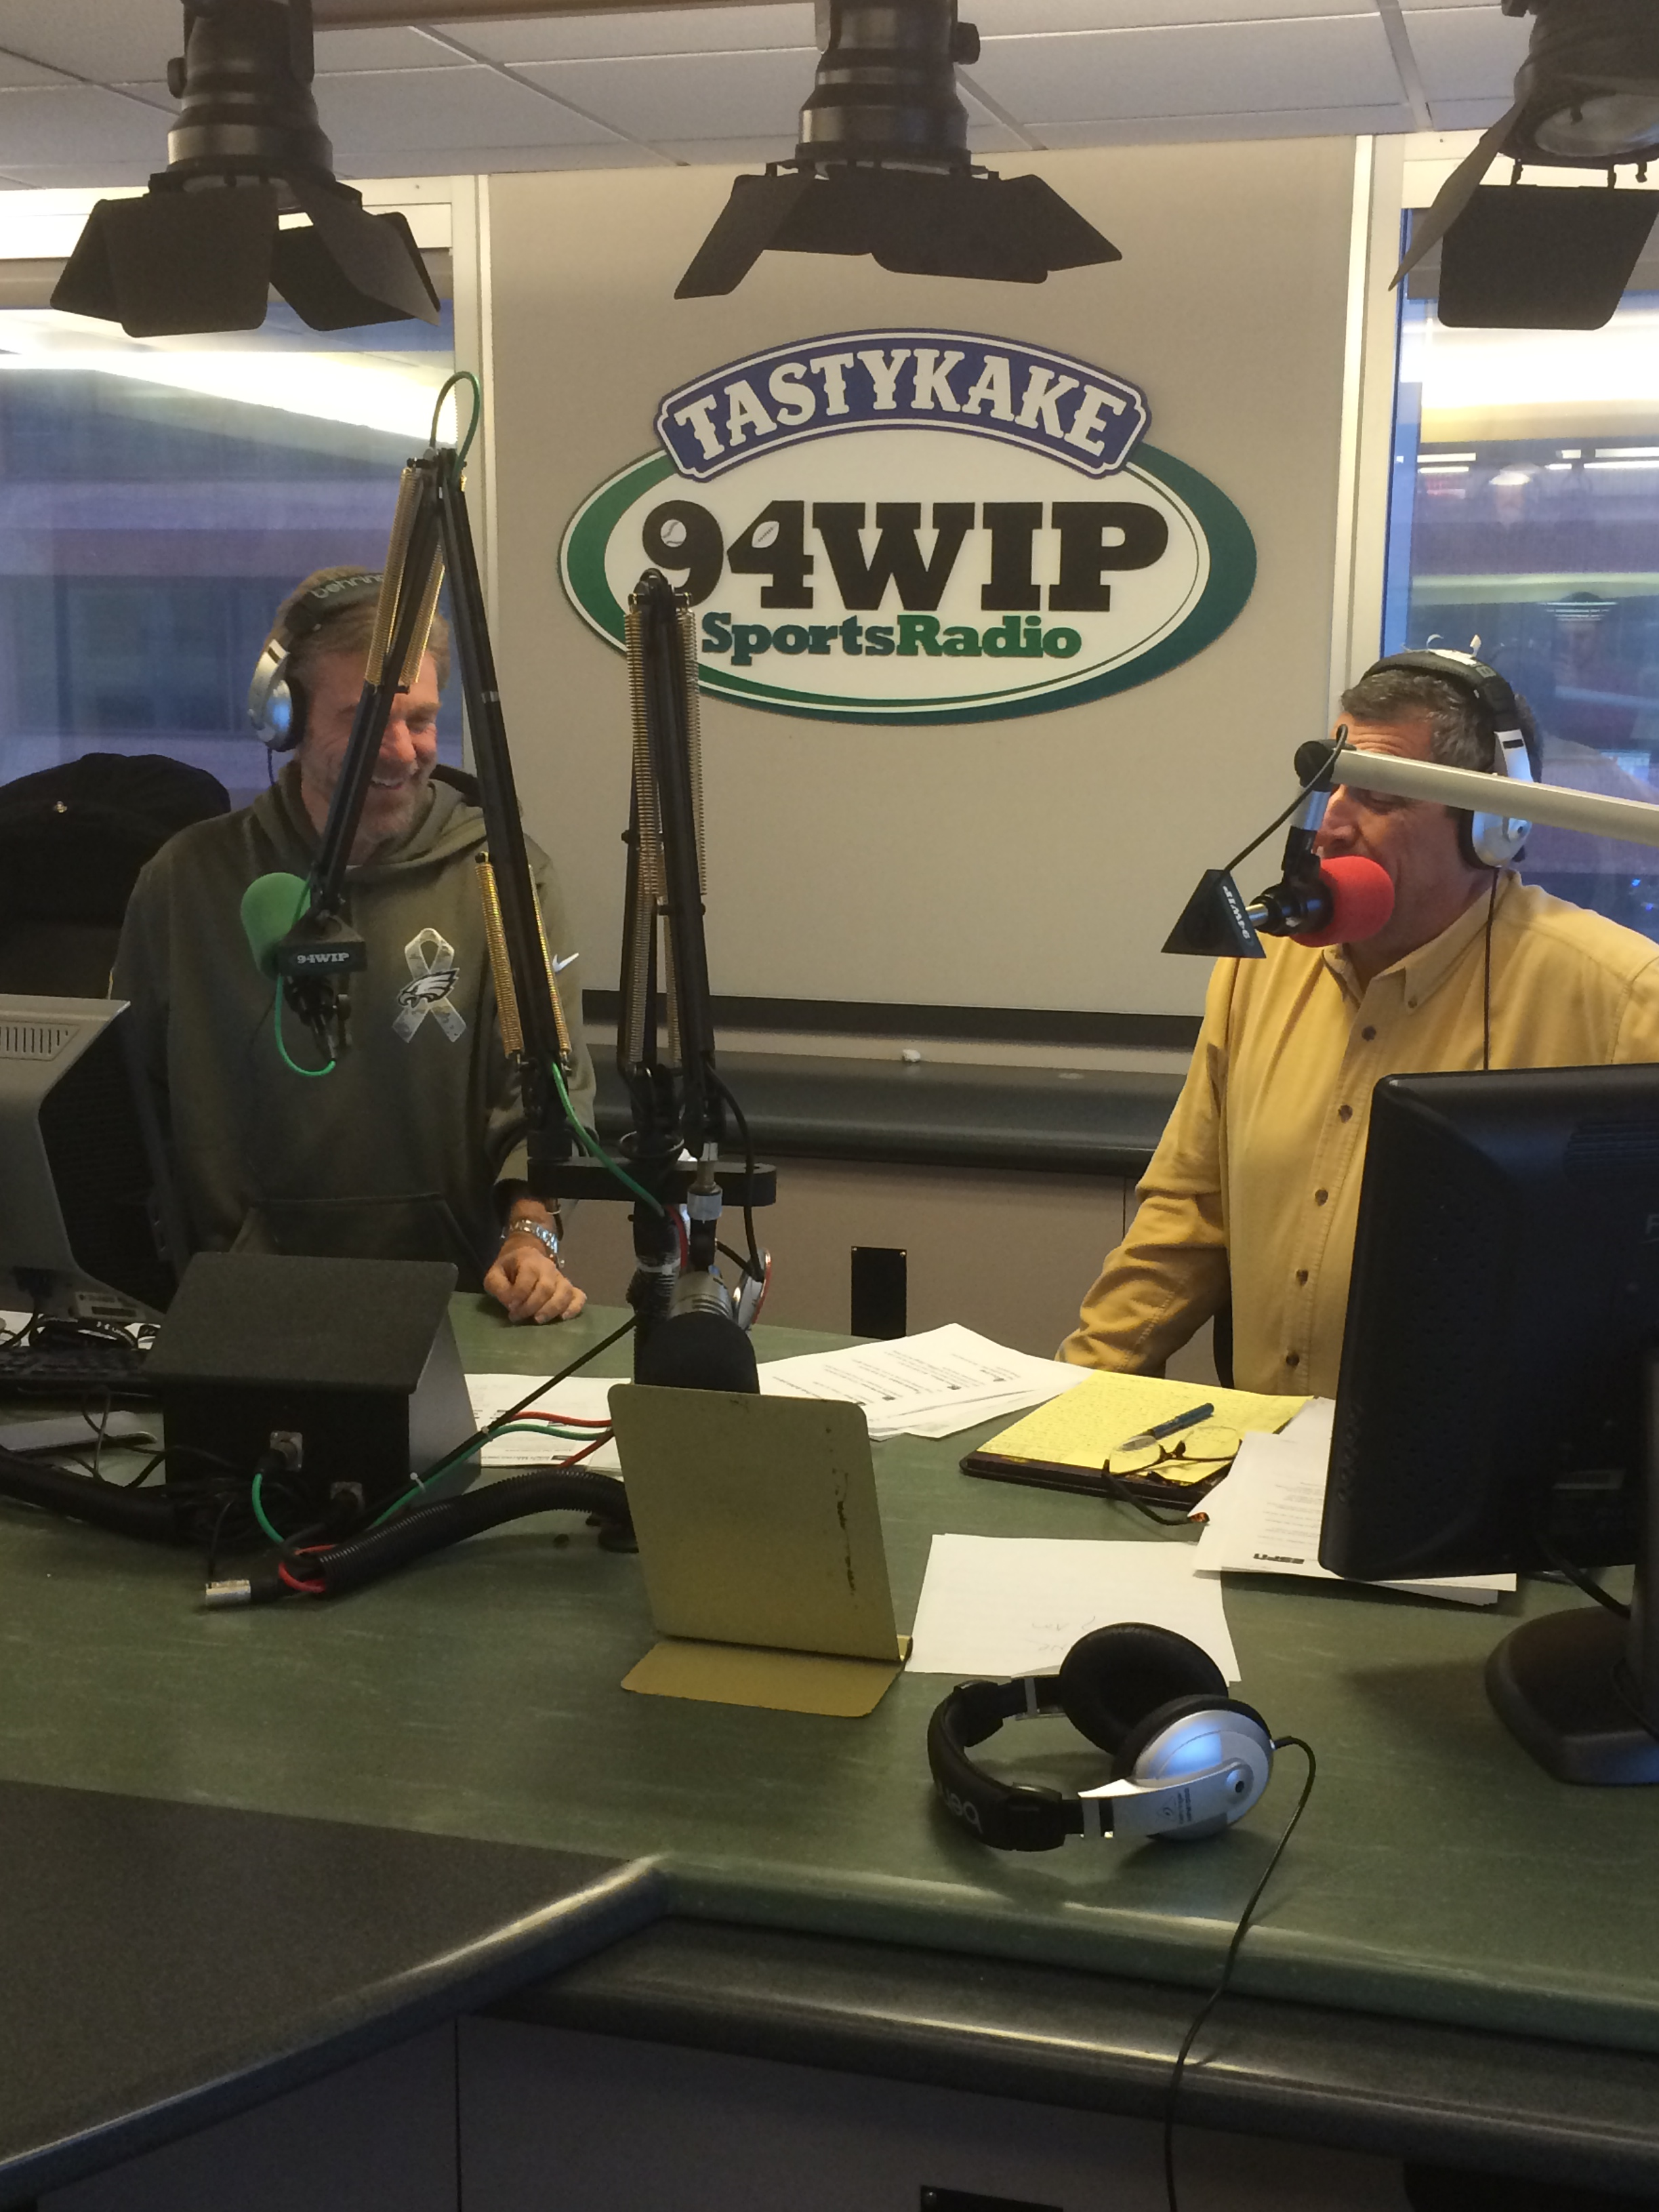 MARCH 4, 2015: Howard Eskin (left) and Angelo Cataldi (right) in the SportsRadio 94WIP studio together. (Photo credit: Andrew Porter/WIP)